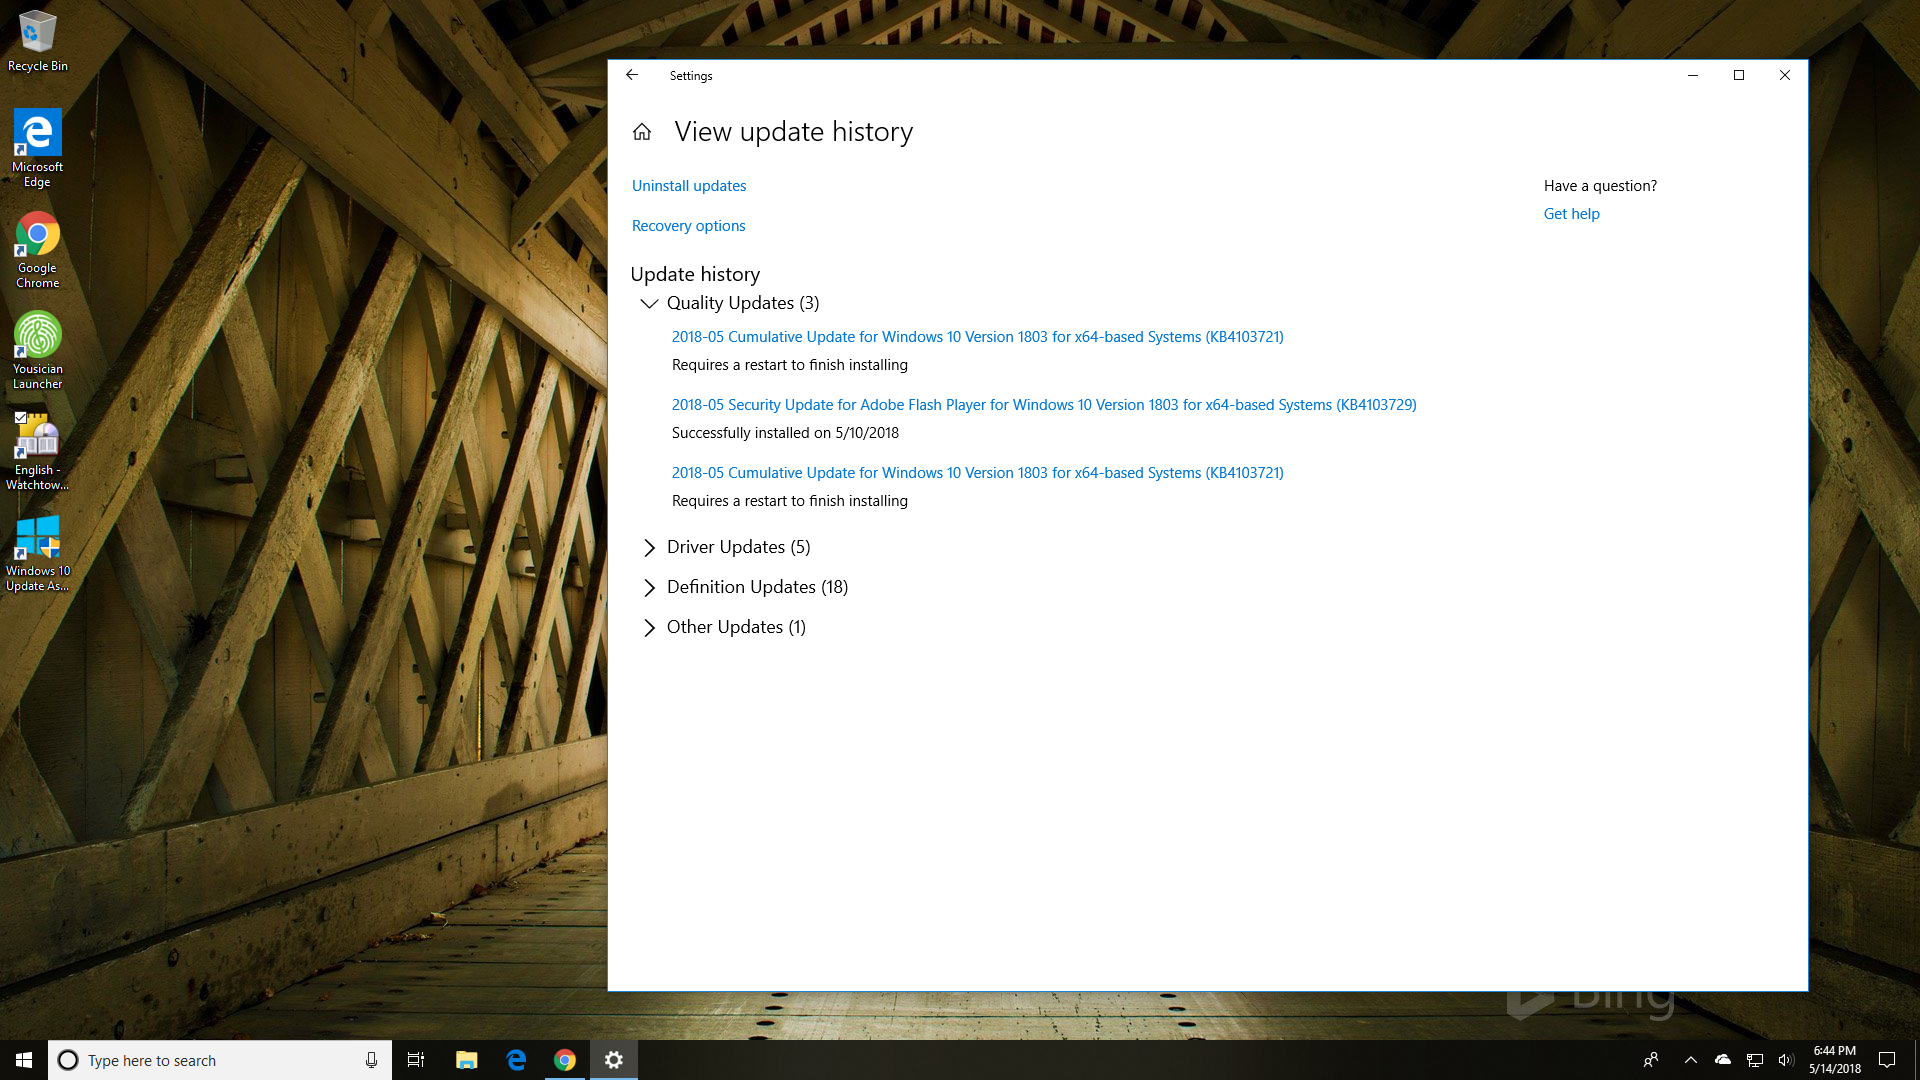 Windows 10 update constantly says requires restart